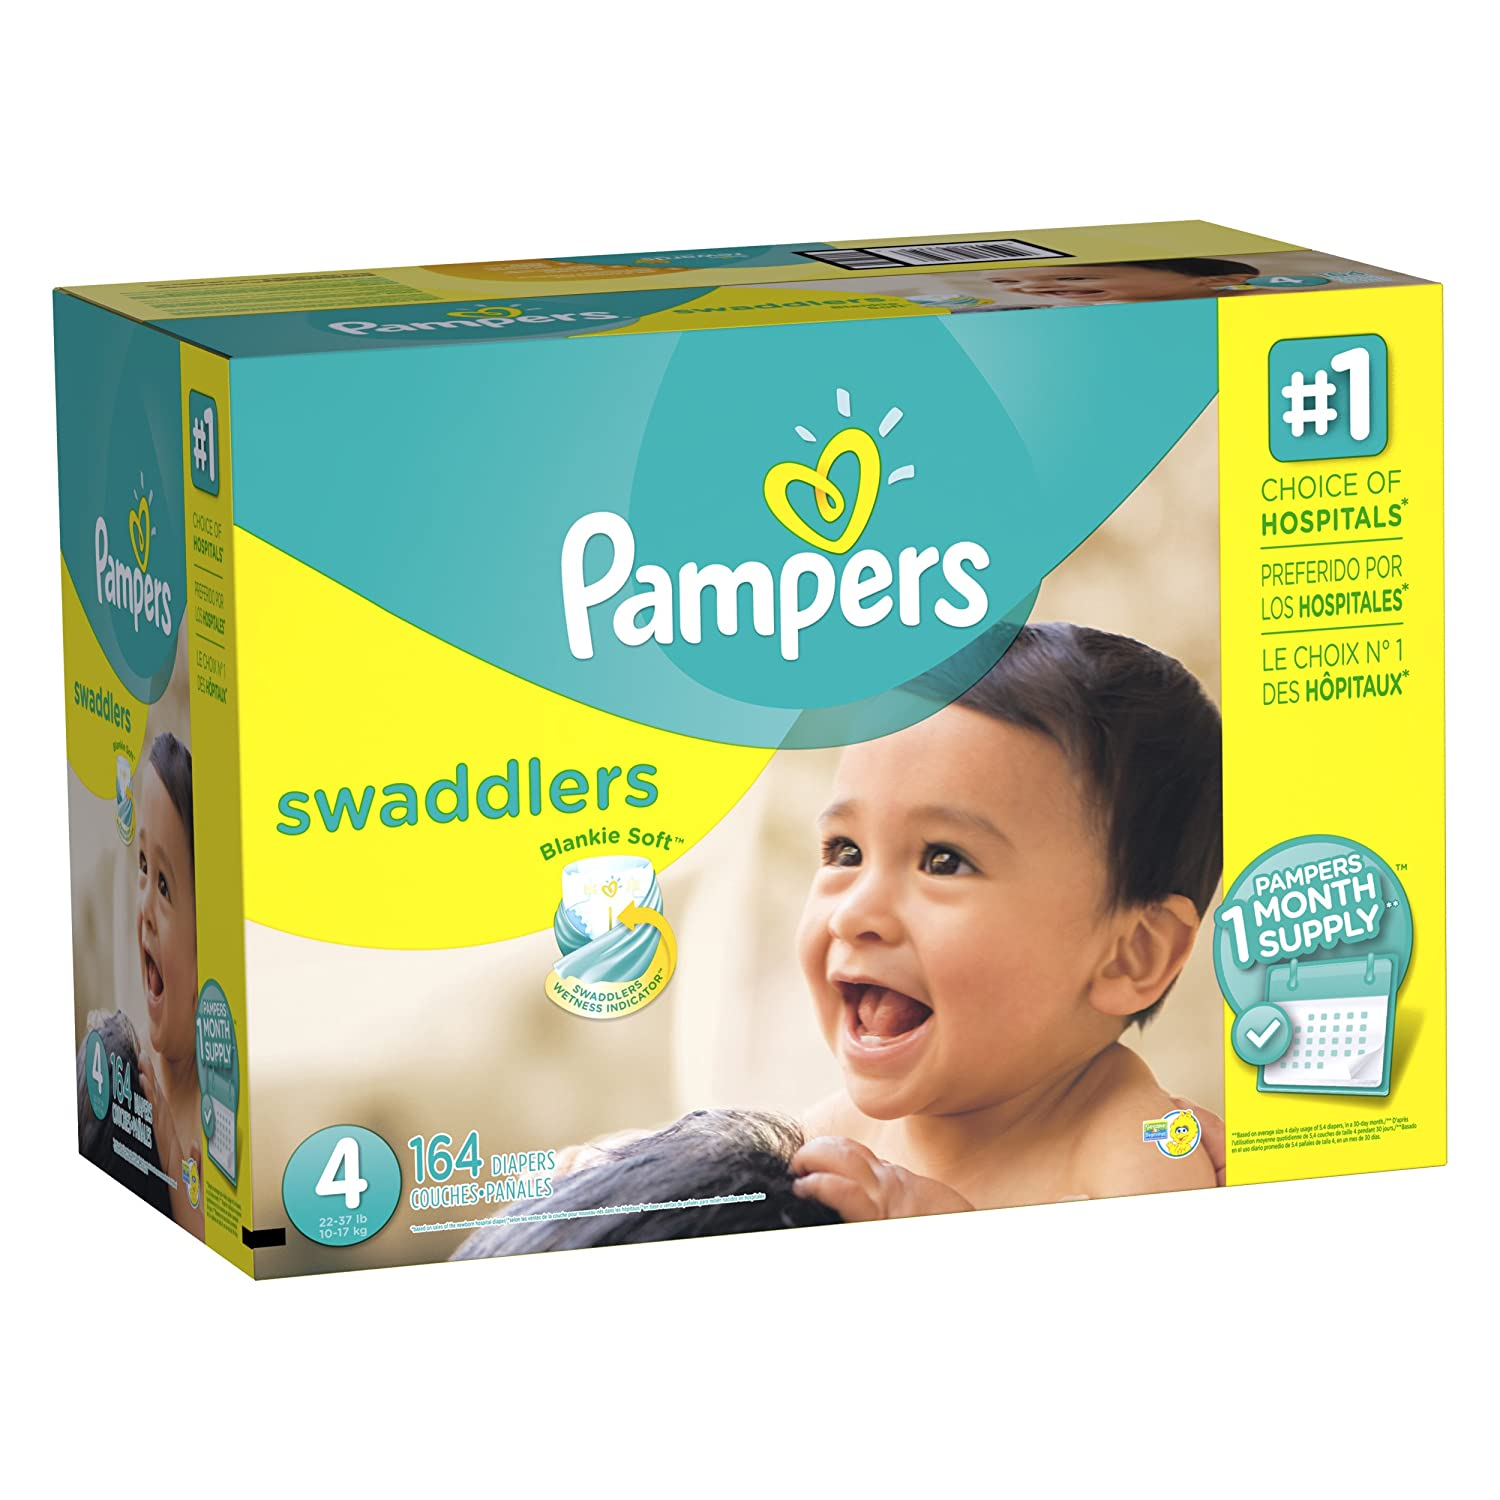 Pampers Swaddlers Disposable Baby Diapers Size 2, One Month Supply, 204 Count 37000933502